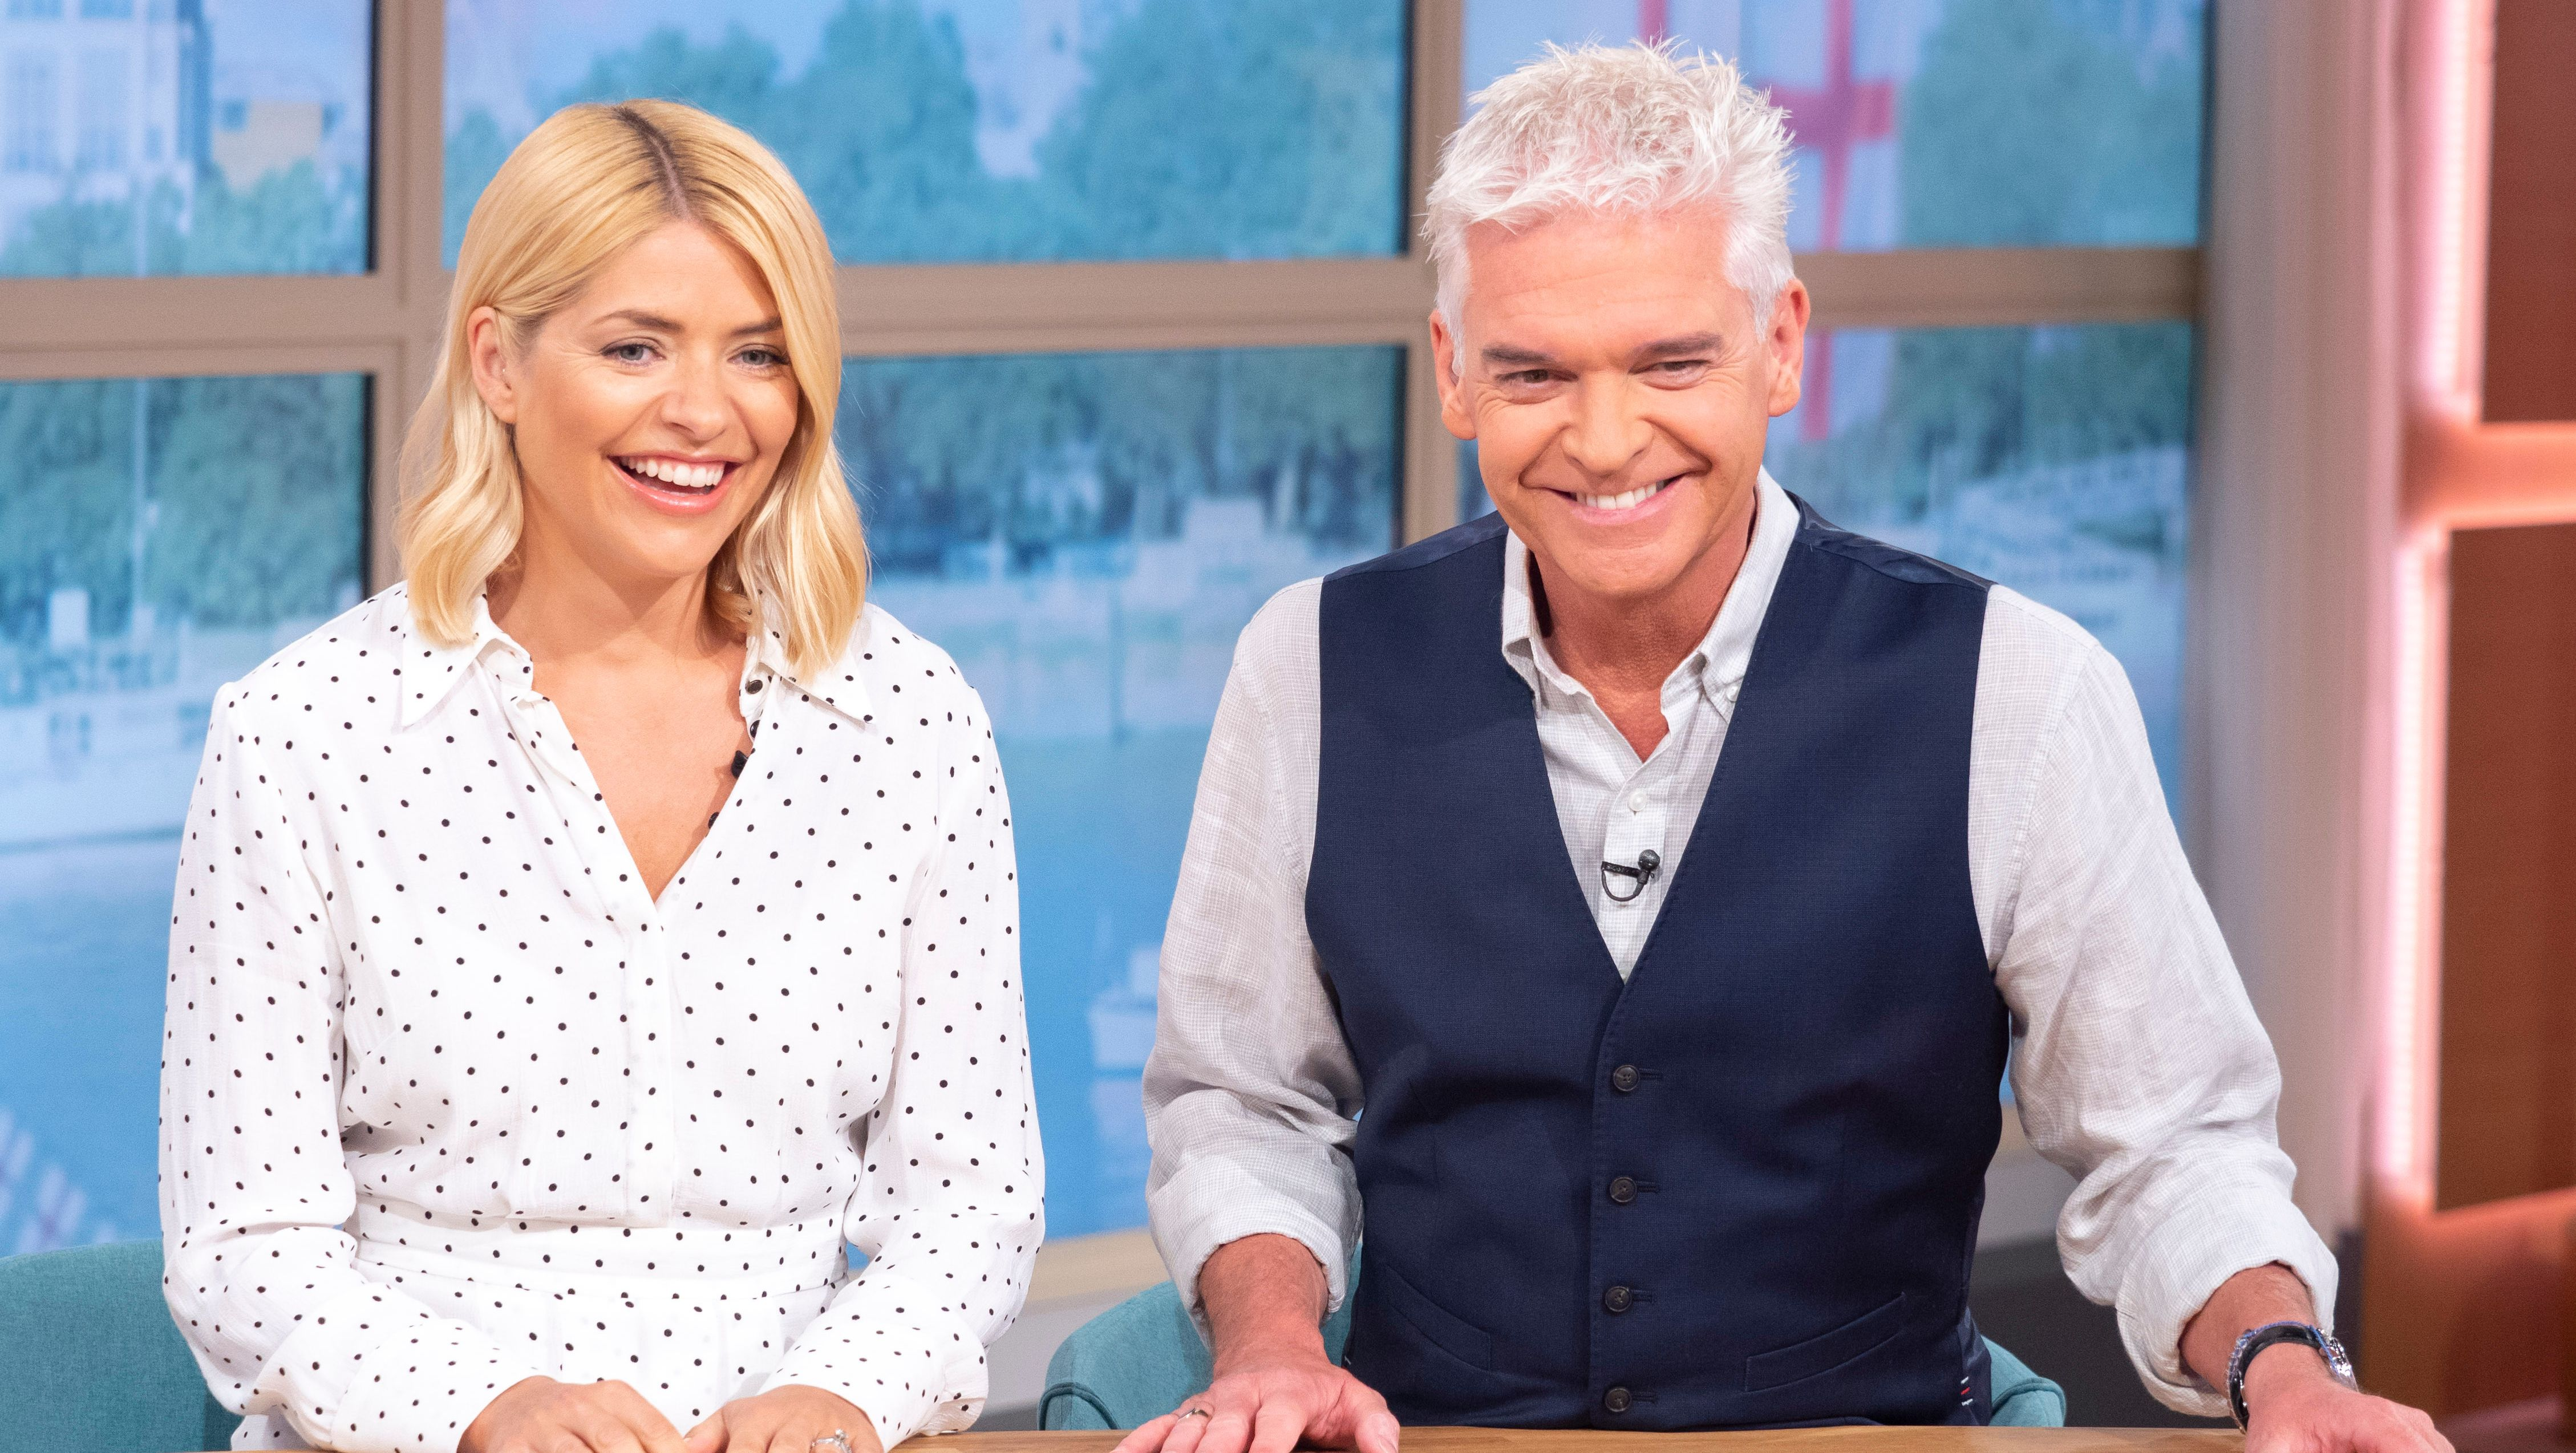 Holly Willoughby and Phillip Schofield delight fans with holiday photo